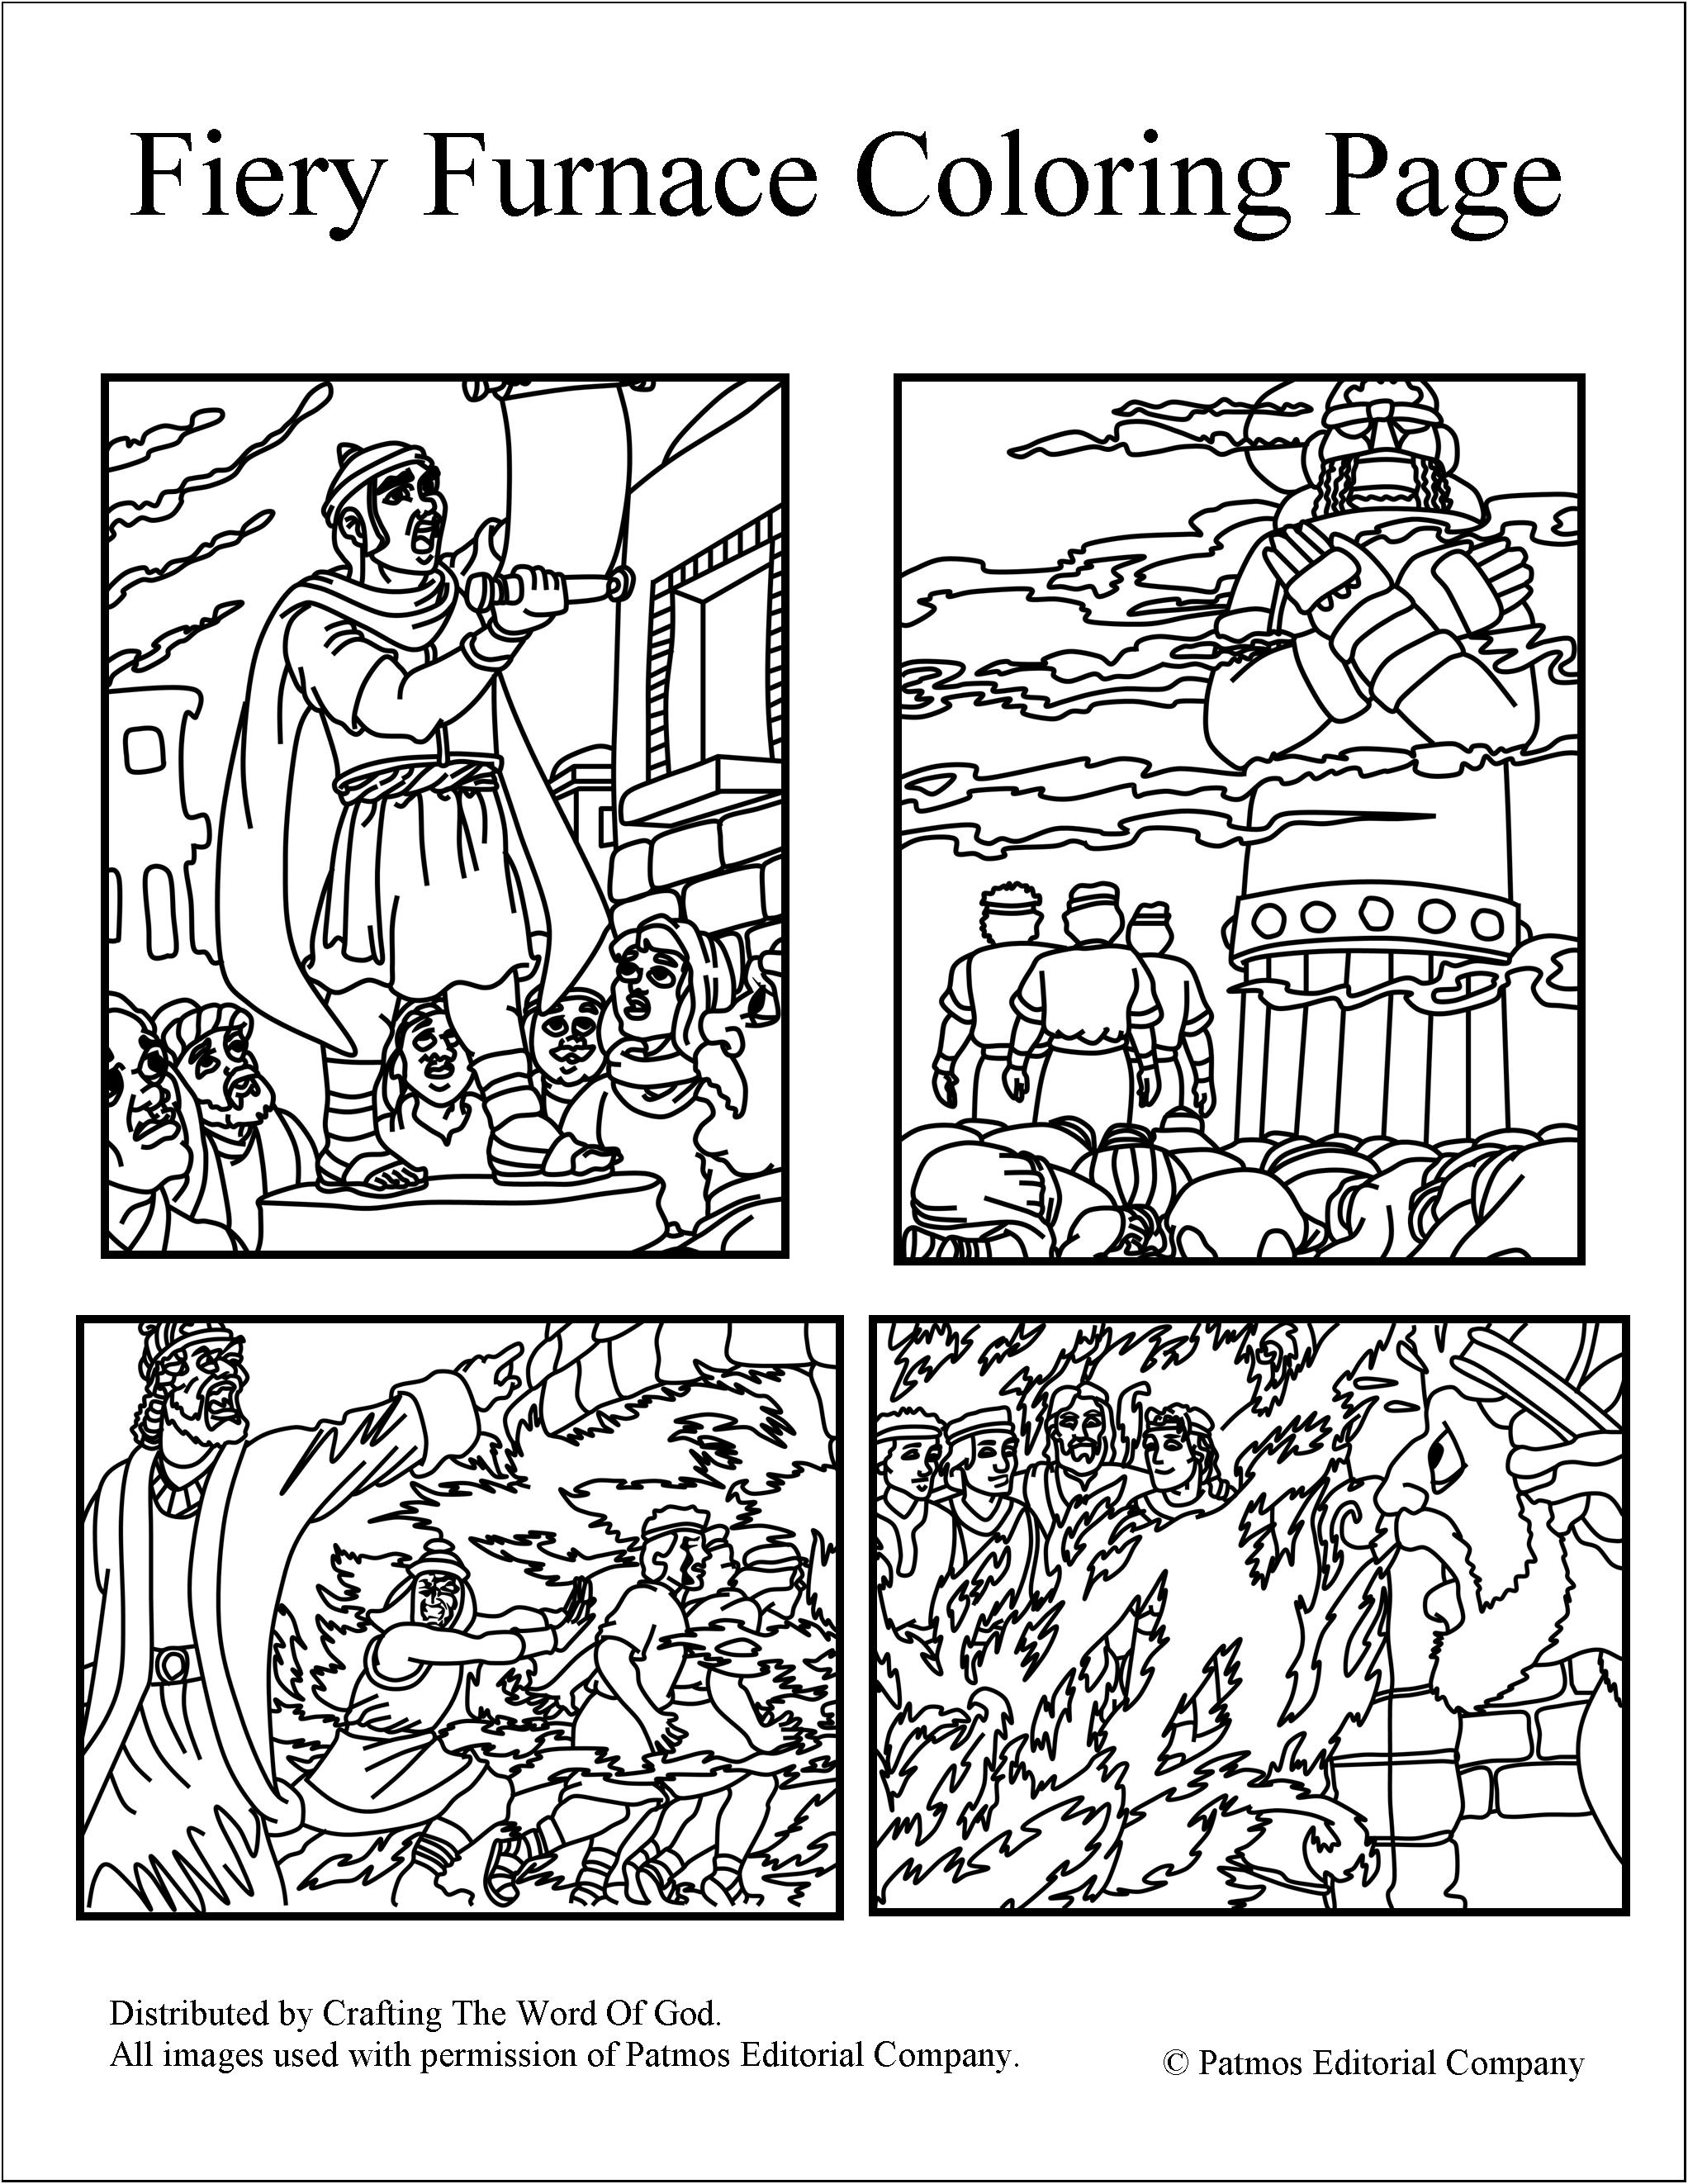 fiery furnace coloring page free fiery furnace coloring page children39s ministry deals fiery coloring furnace page